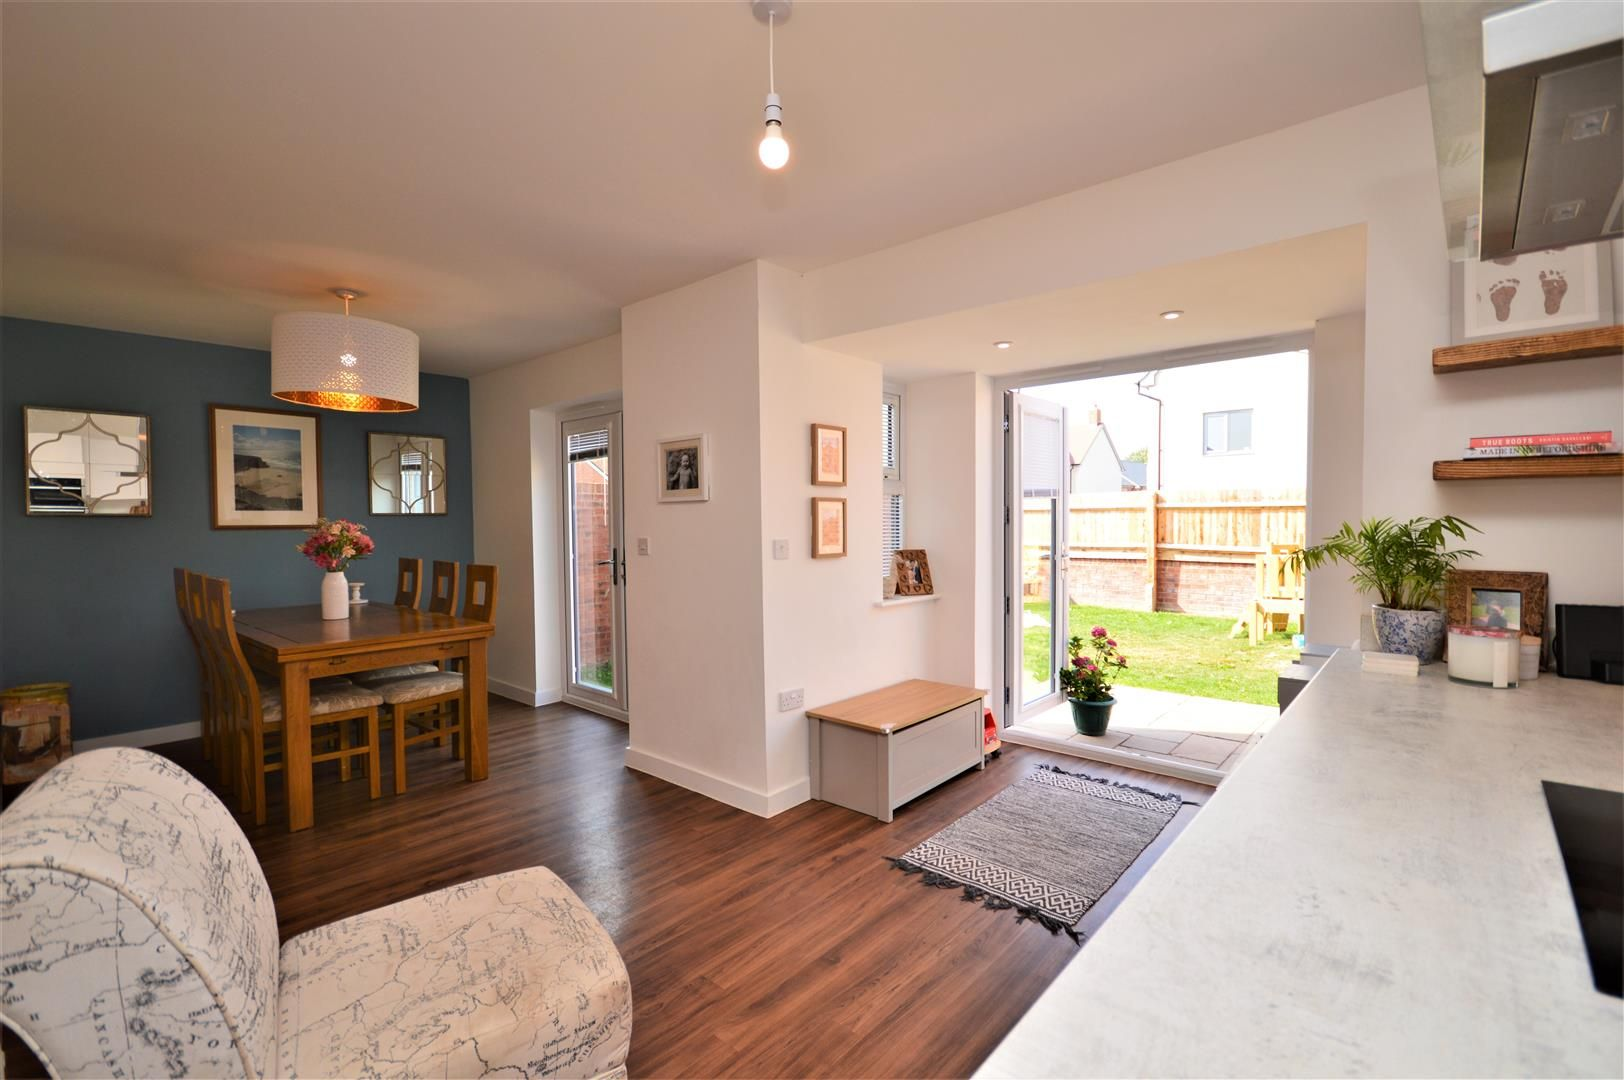 4 bed detached for sale in Weobley  - Property Image 6